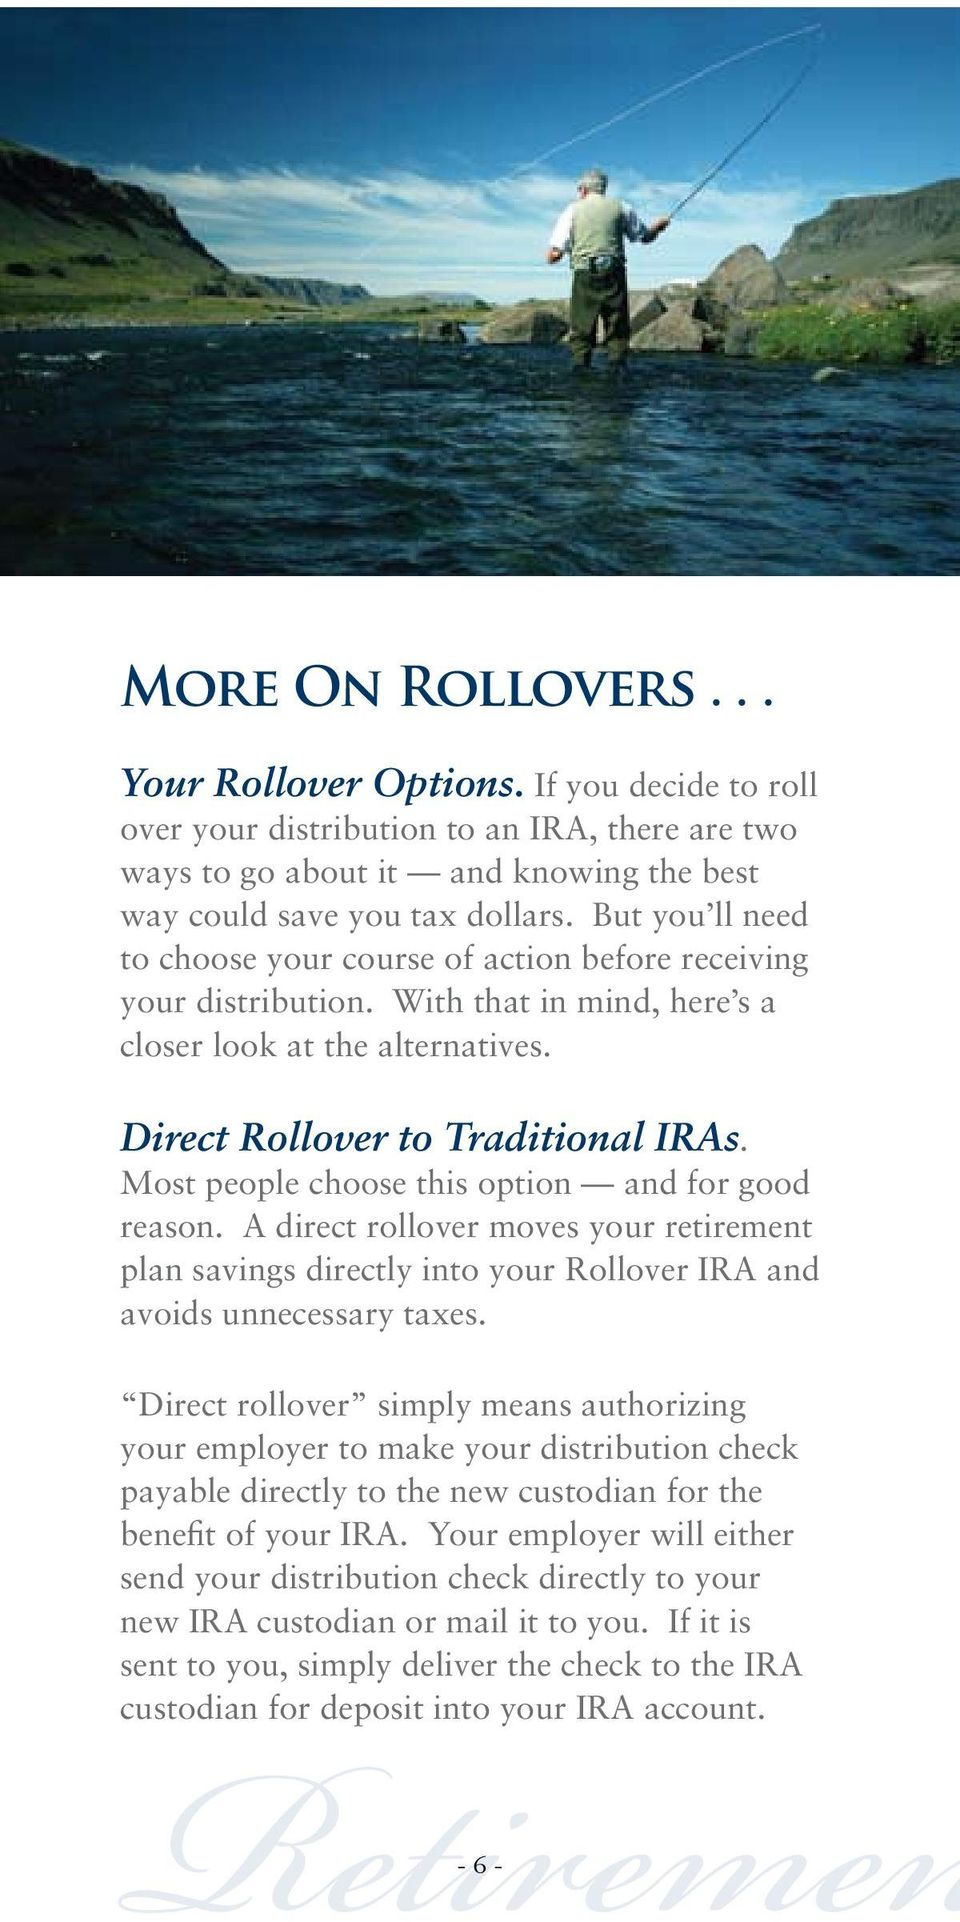 Most people choose this option and for good reason. A direct rollover moves your retirement plan savings directly into your Rollover IRA and avoids unnecessary taxes.